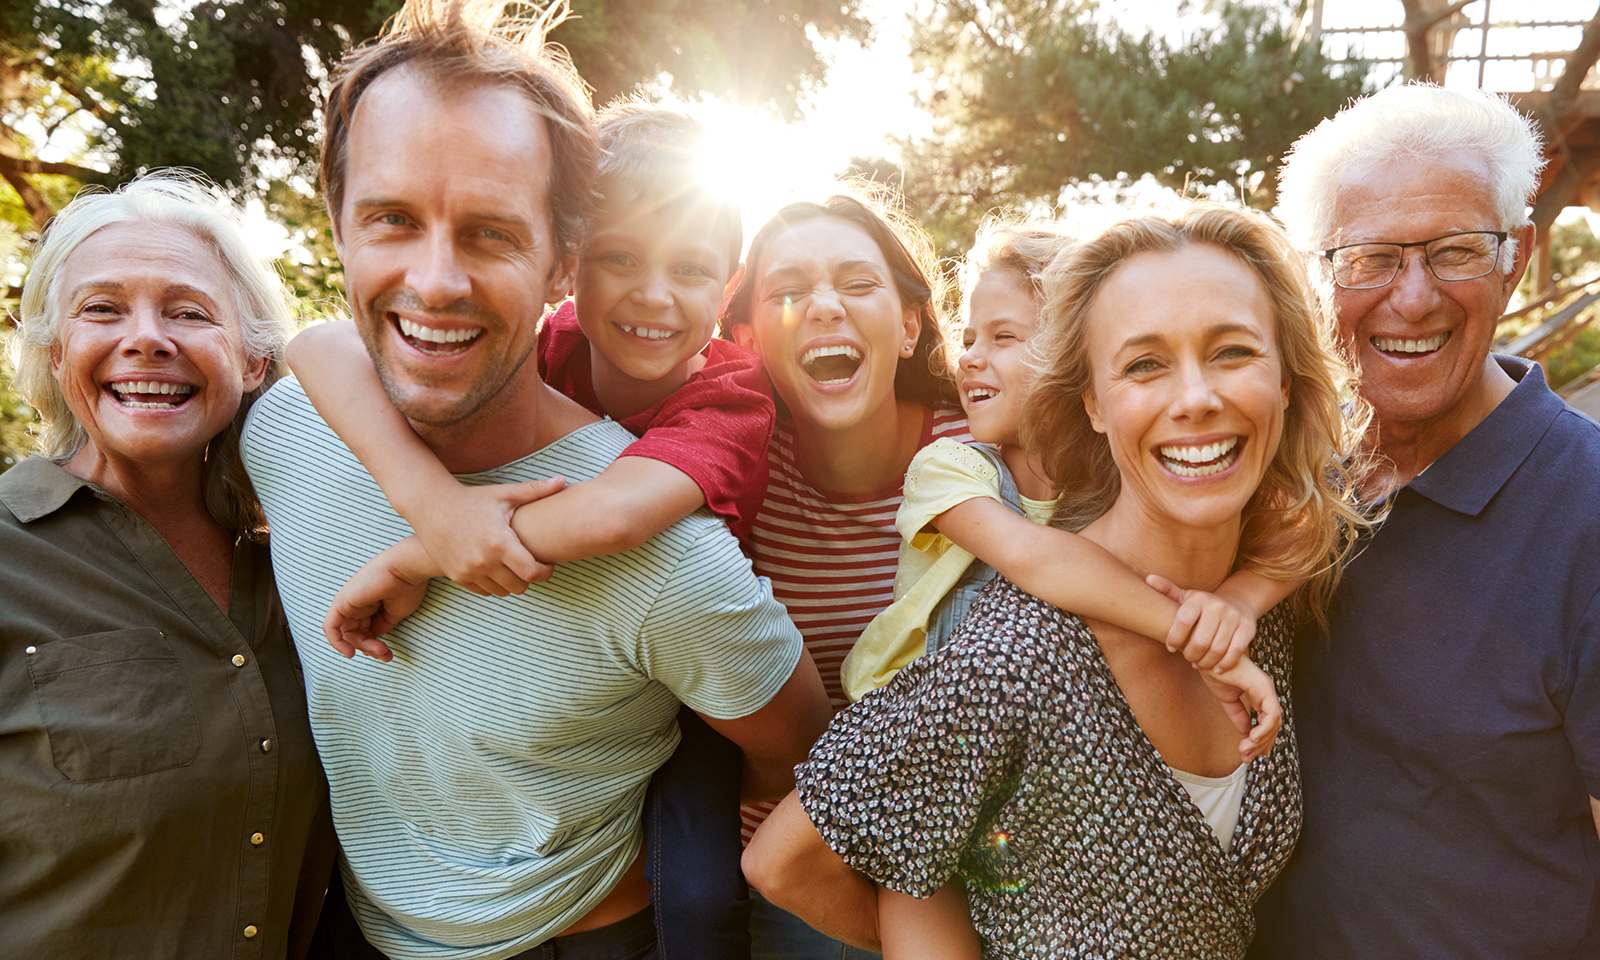 hugging-makes-you-healthier-main-image-happy-family-hugging